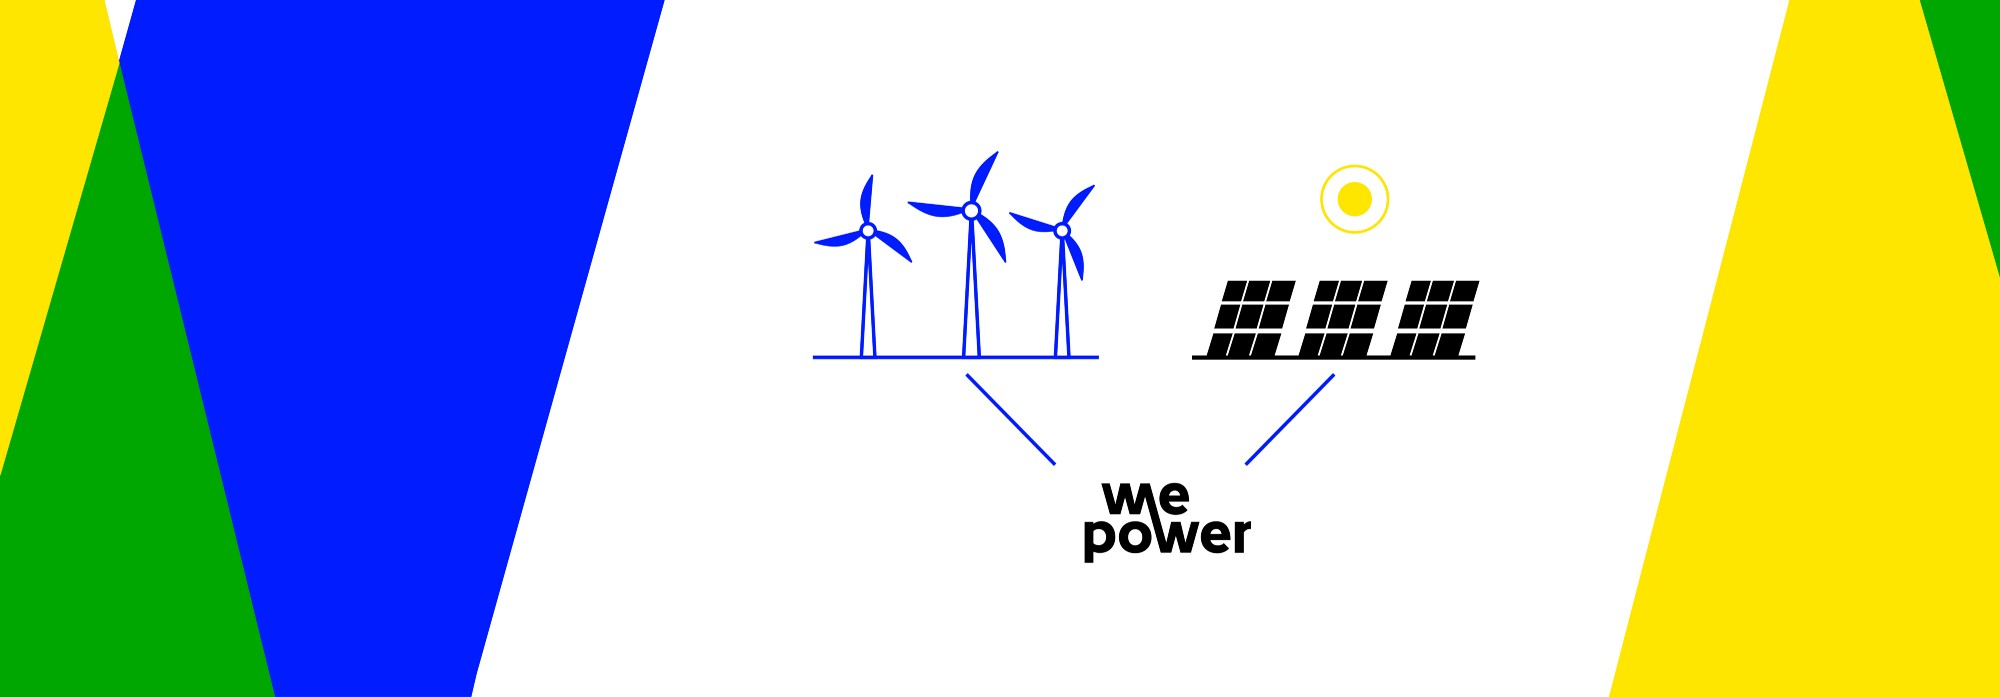 Why Should I Join Wepower Practical Examples Medium Wind Energy Turbine Diagram Furthermore